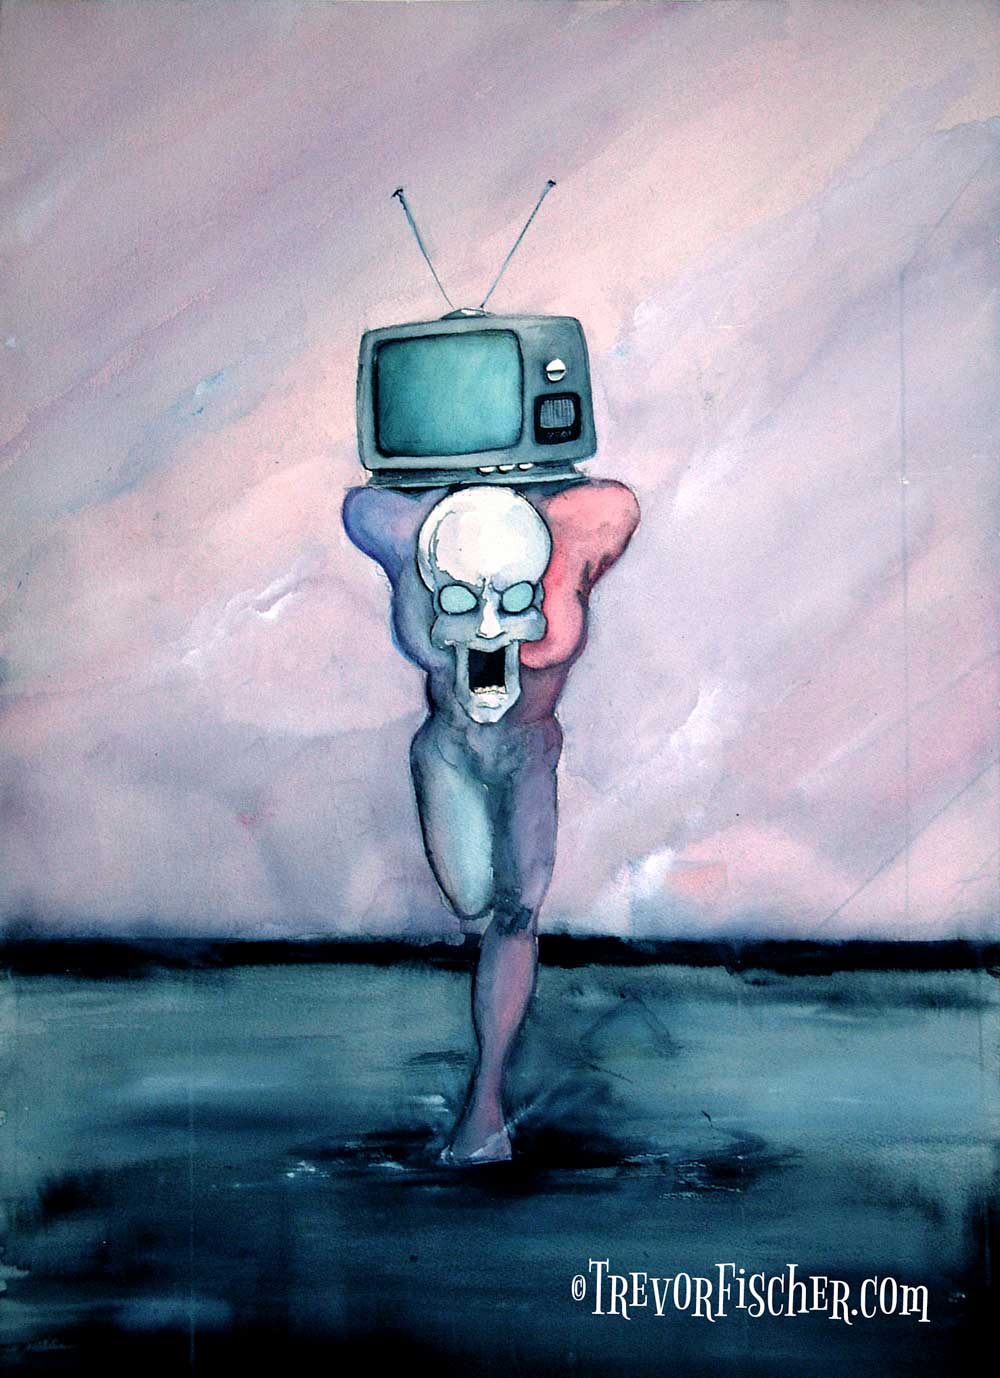 A skeletal figure with a TV on its back running at the viewer